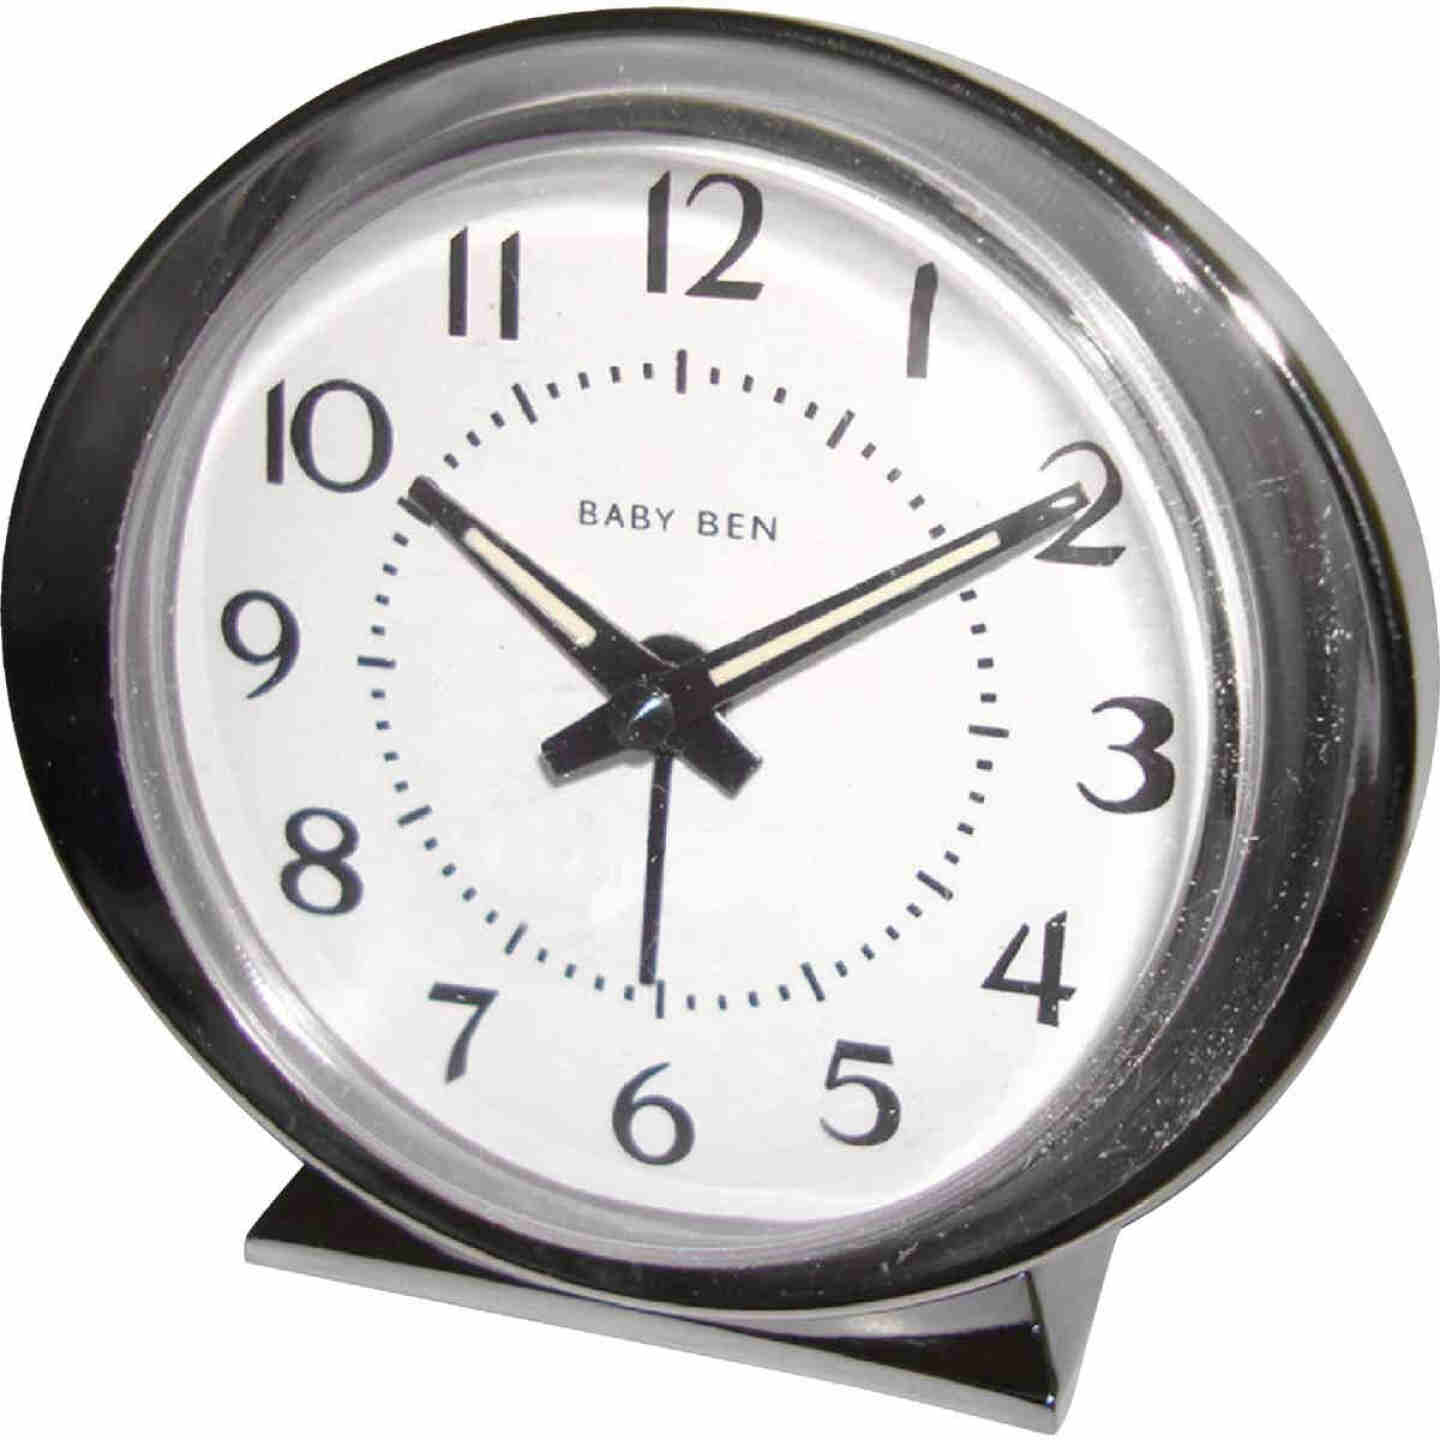 Westclox Baby Ben Silver Classic Style Battery Operated Alarm Clock Image 1